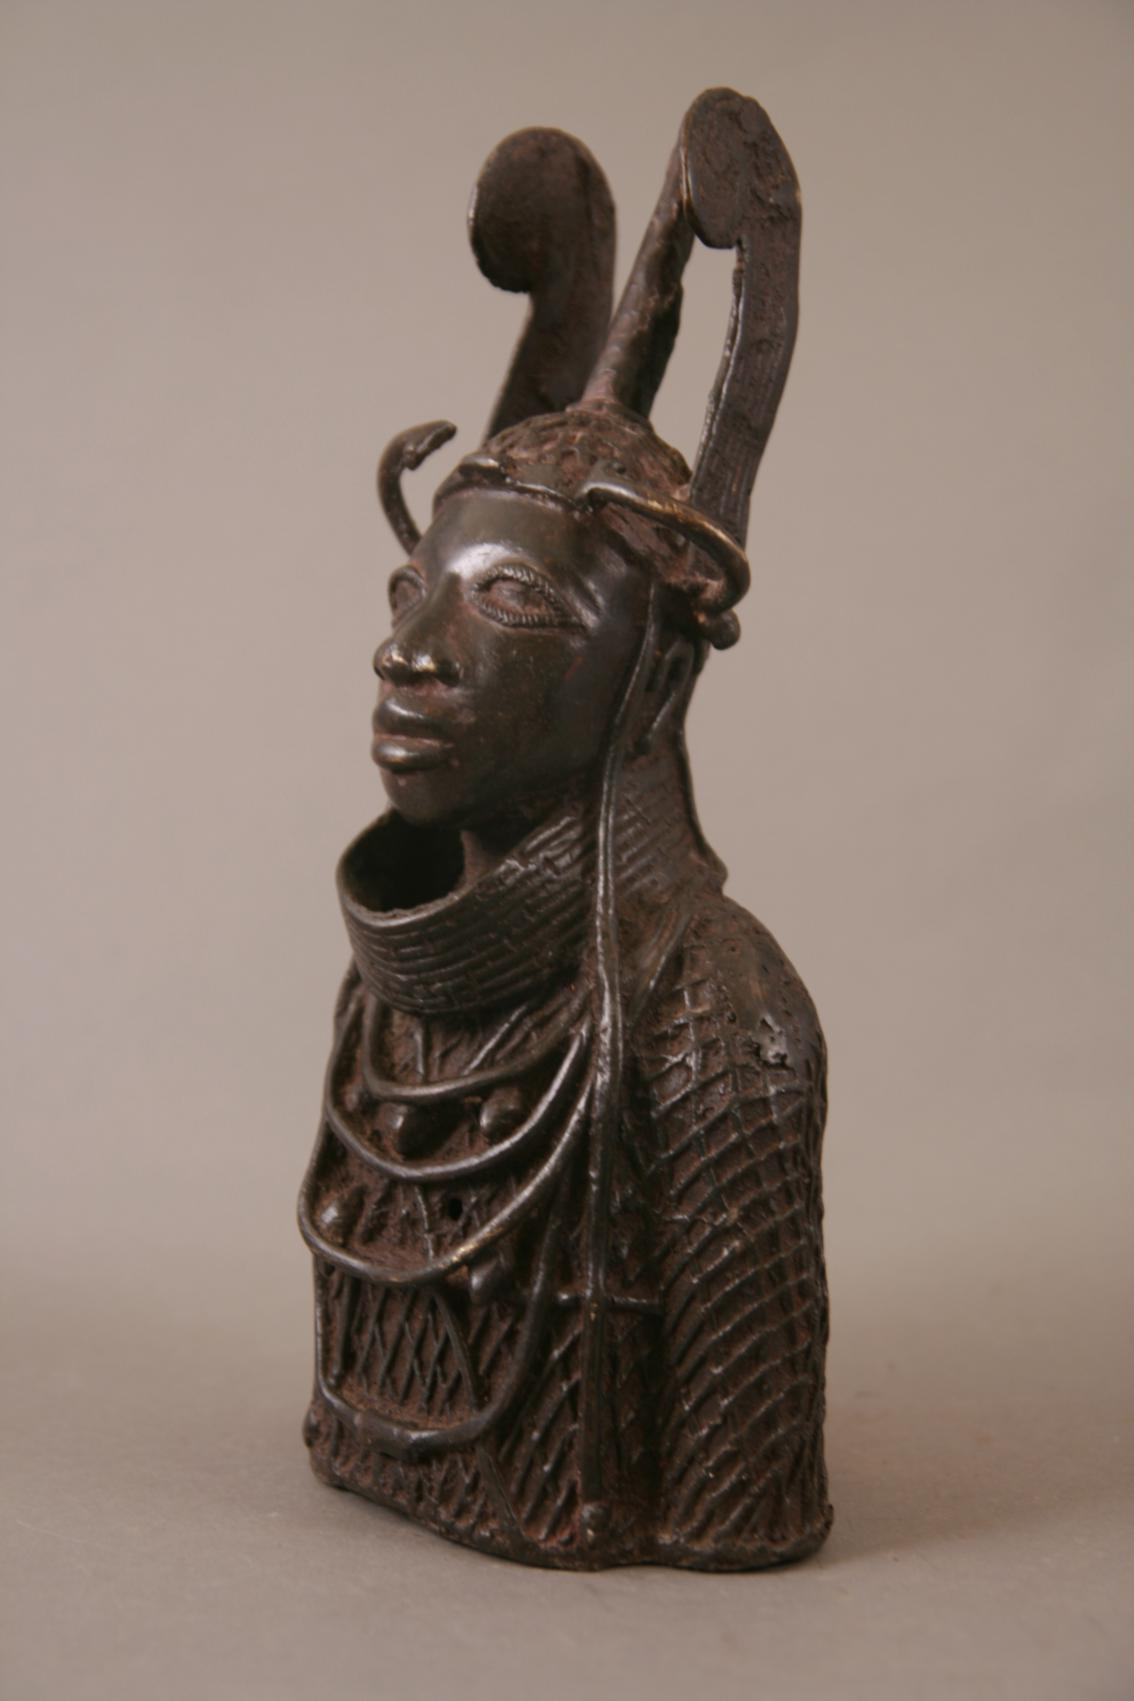 kirchner benin bronze Bronzing the benin royalty throughout african history, many societies have remained immortal through the passing of traditions, oral storytelling, and cultural values.